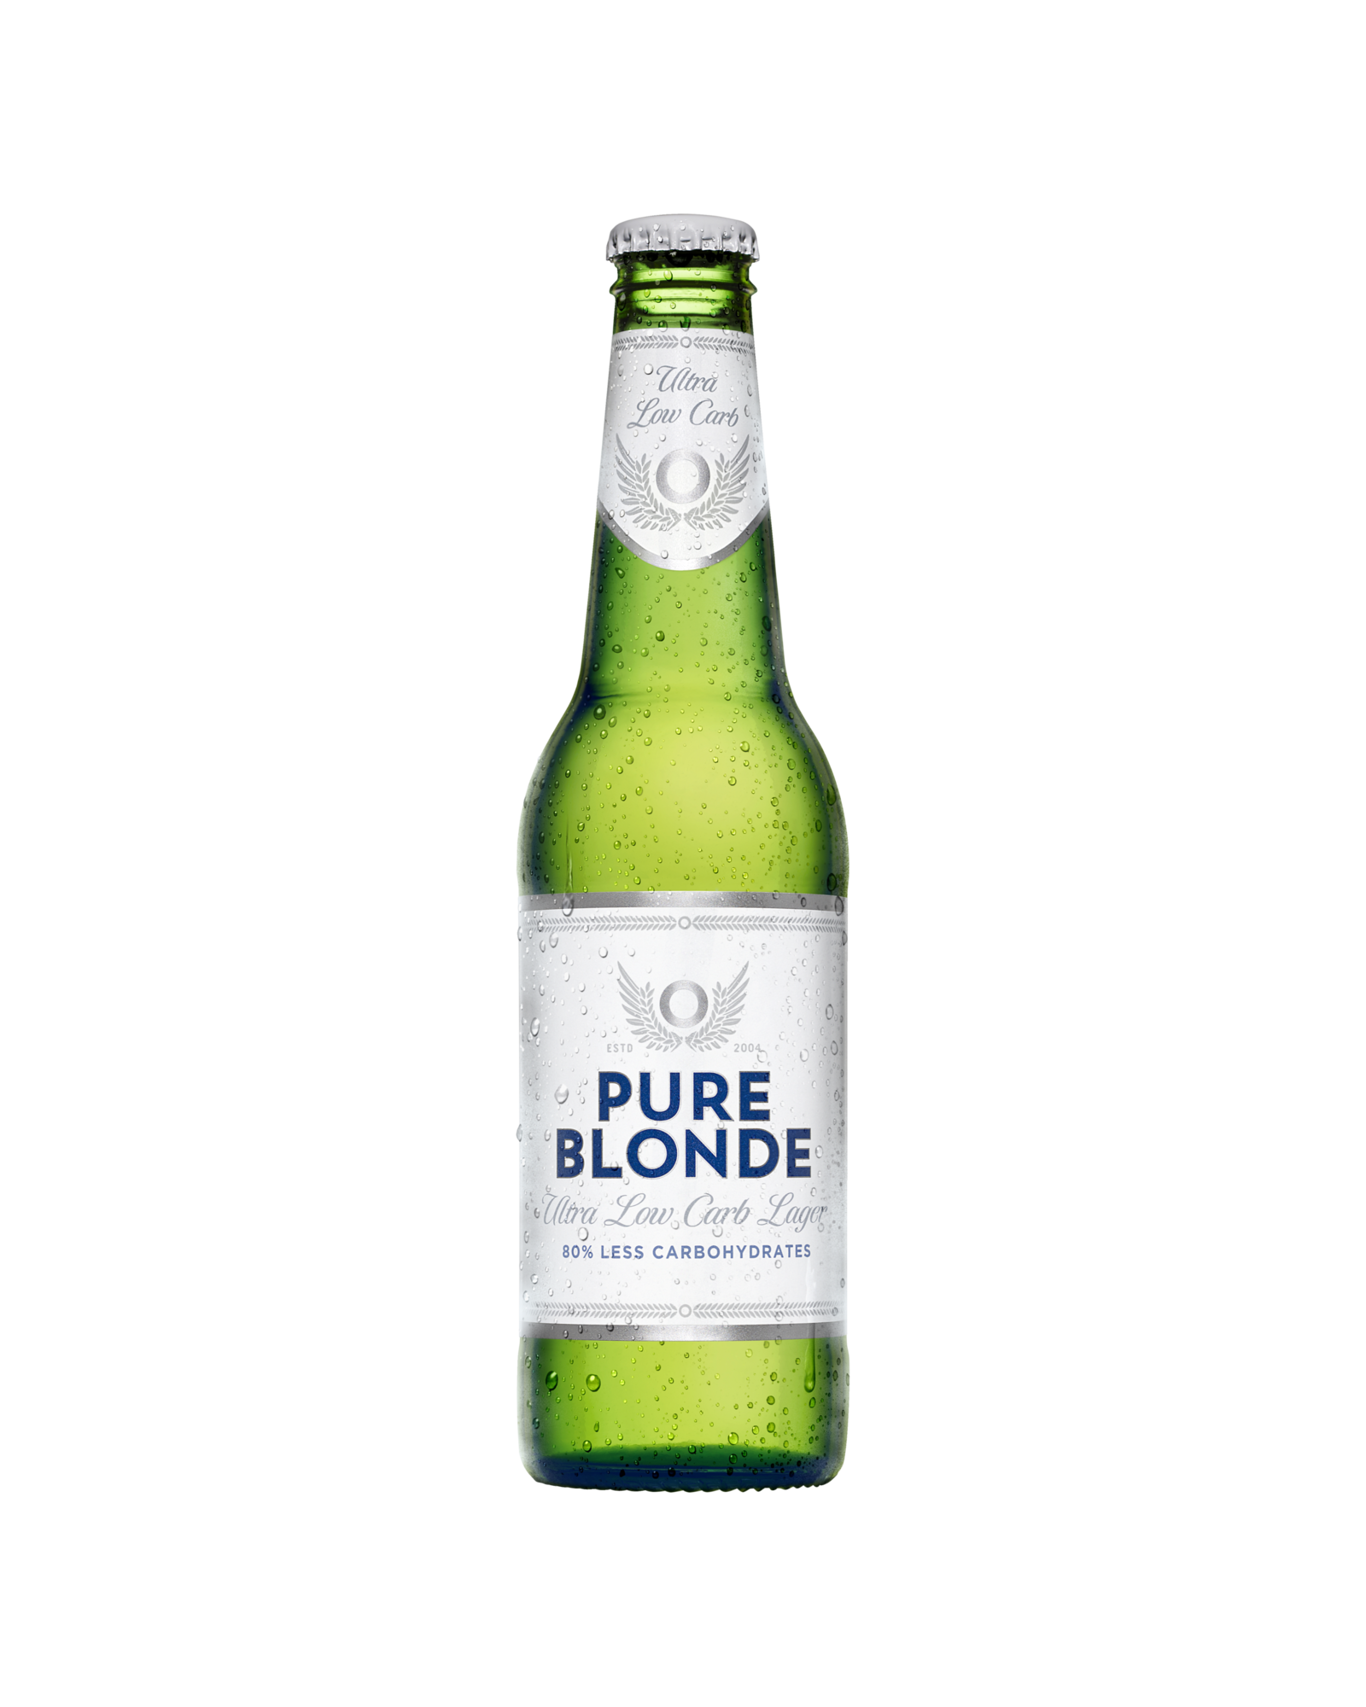 Calories in Pure Blonde